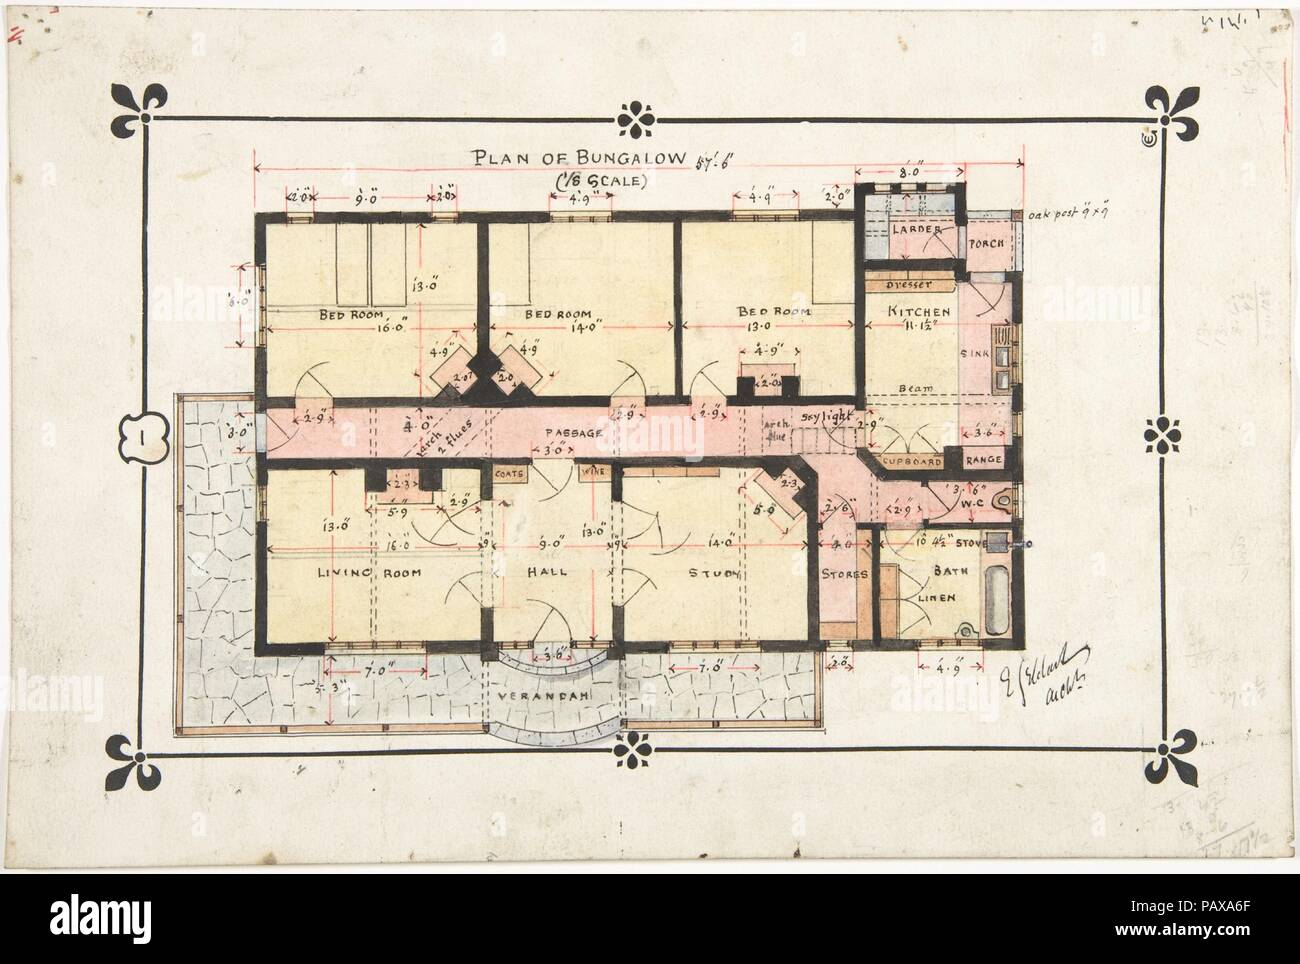 Bungalow Drawing Floor Plan Artist Ernest Geldart British